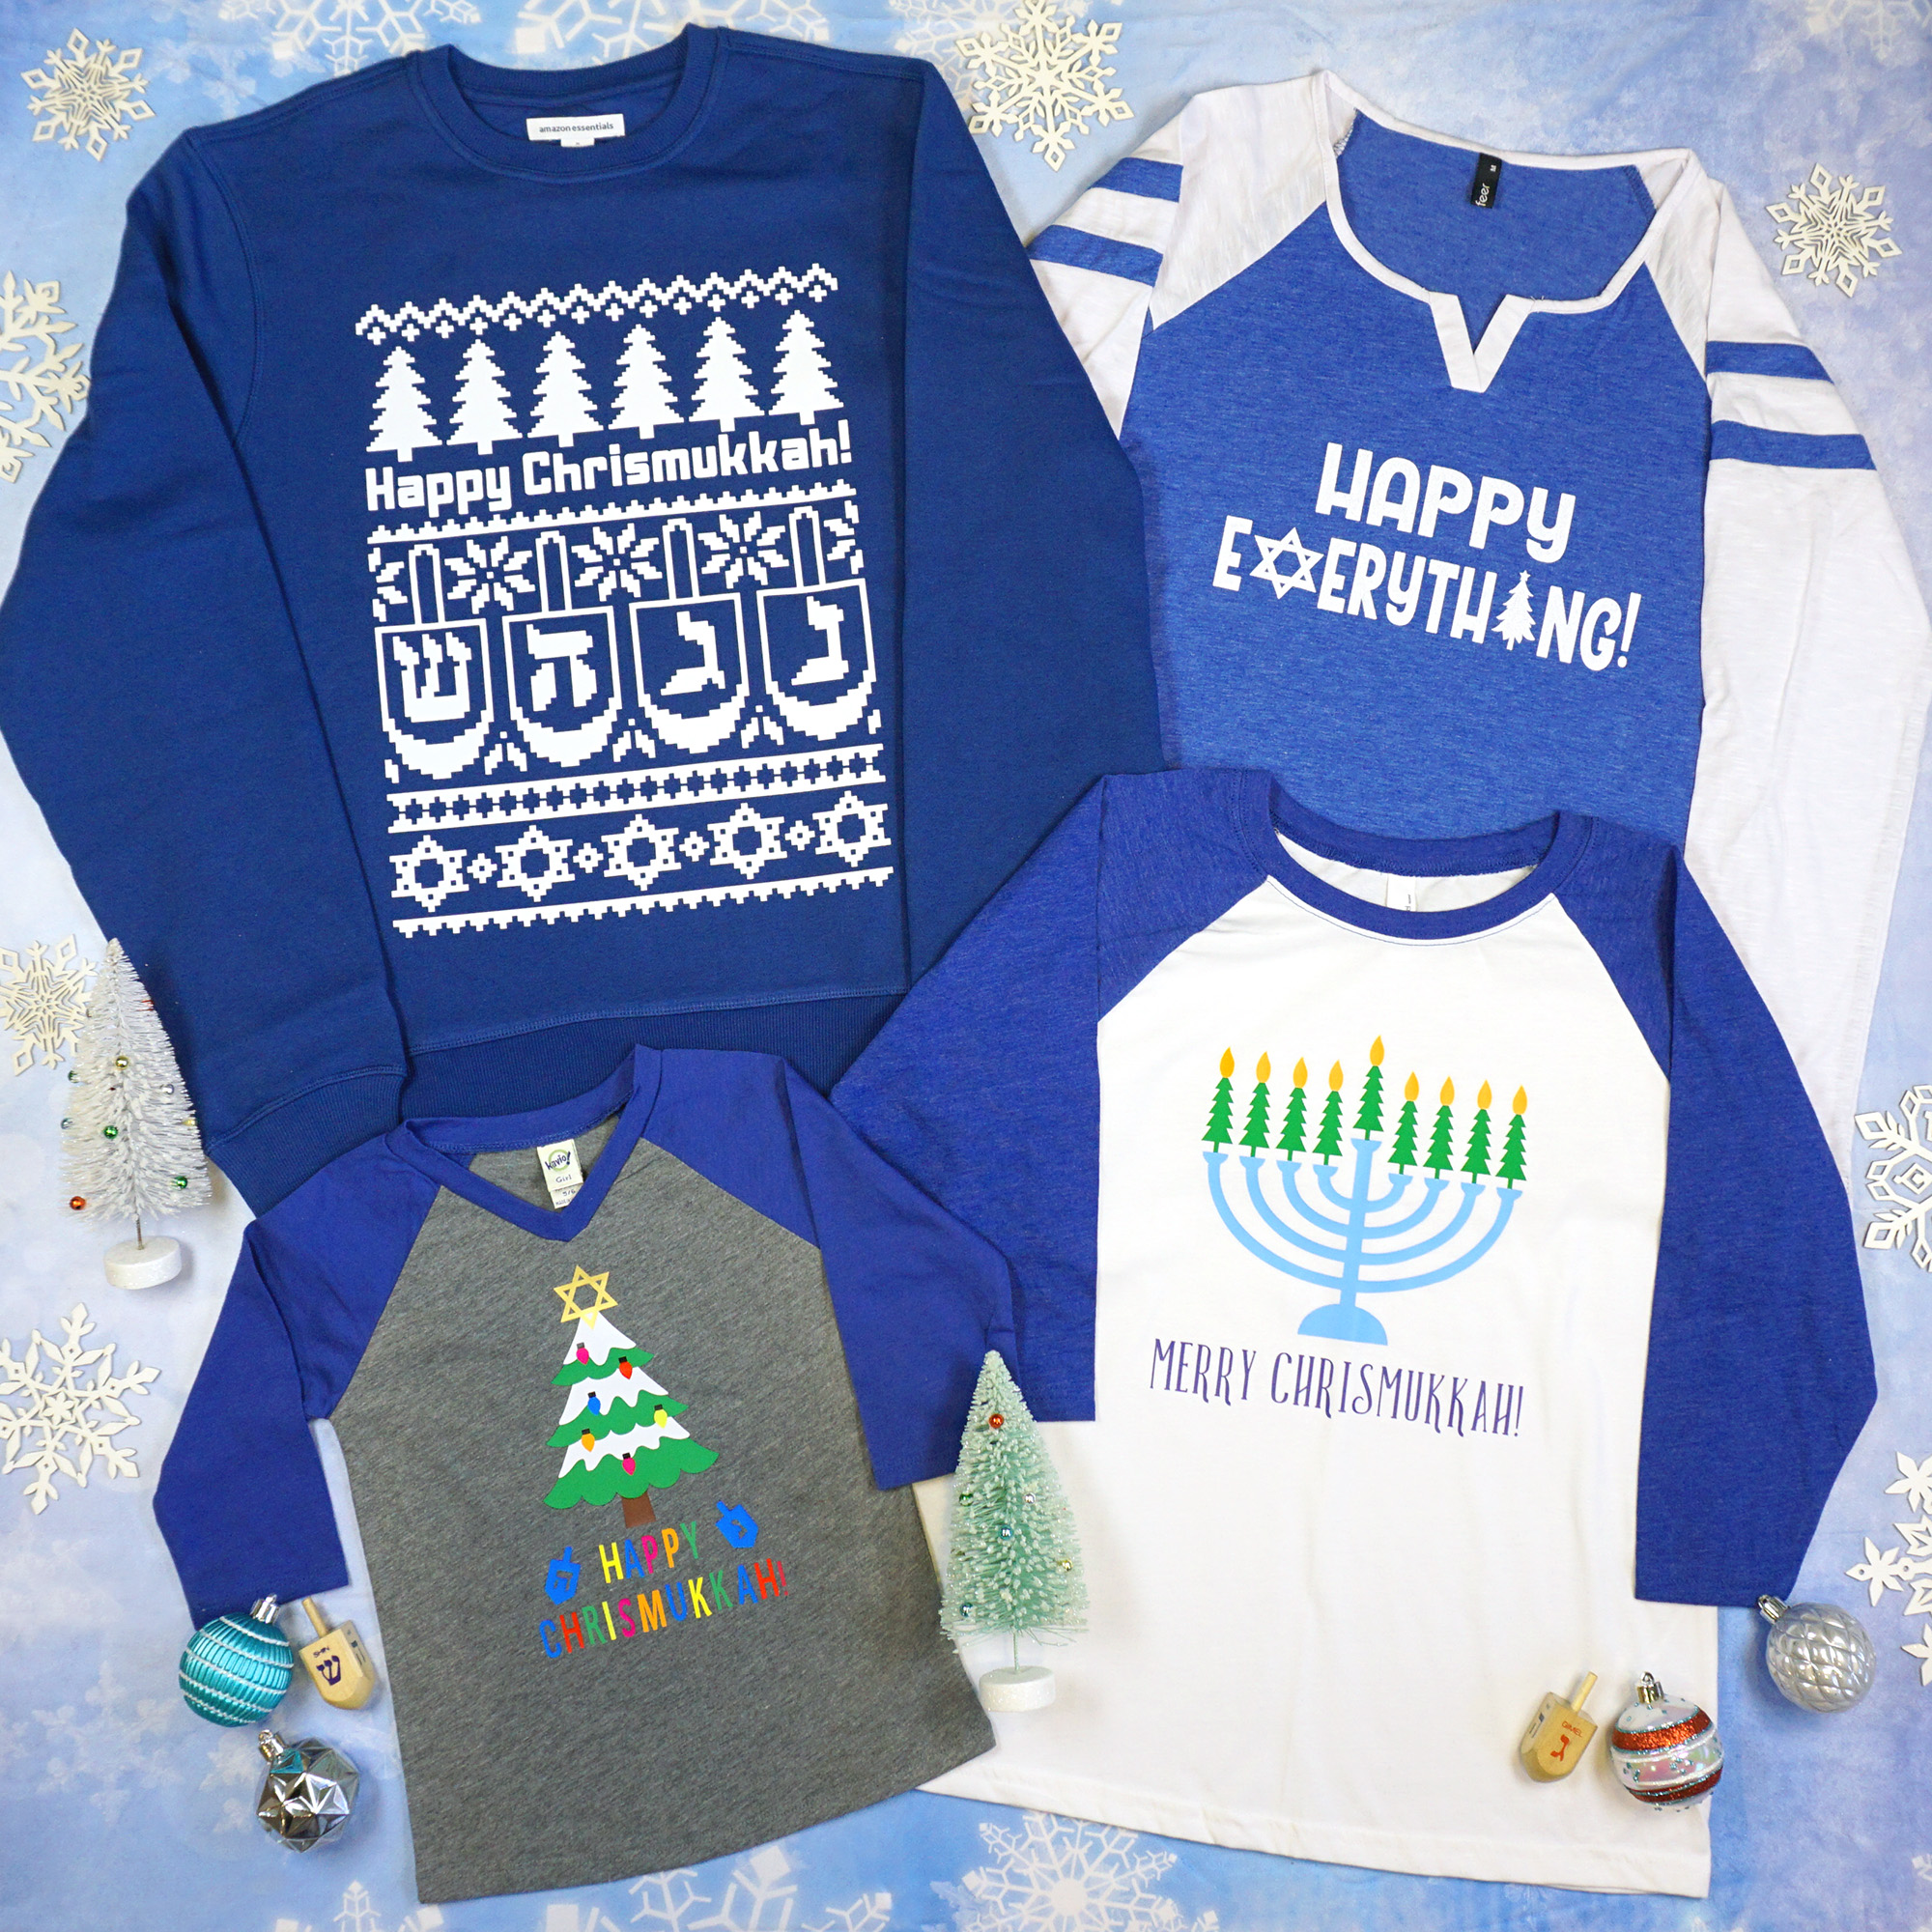 Diy Chrismukkah Shirts With Cricut Happiness Is Homemade